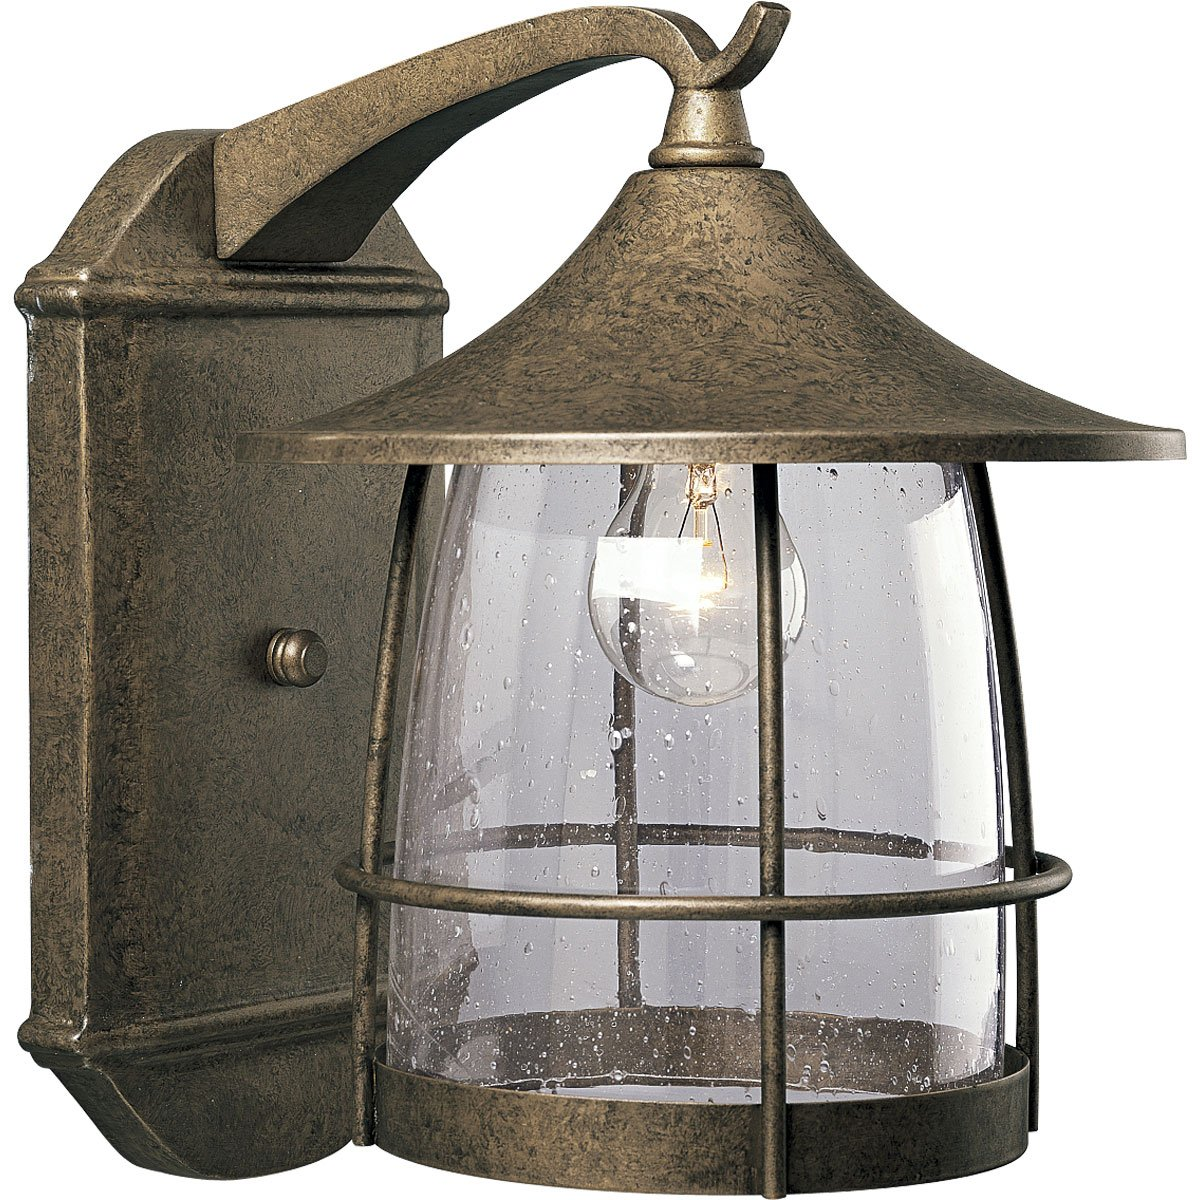 Progress Lighting P5764-86 1-Light Wall Lantern with Wire Frames and Clear Seeded Glass, Burnished Chestnut by Progress Lighting B001BQHJIS